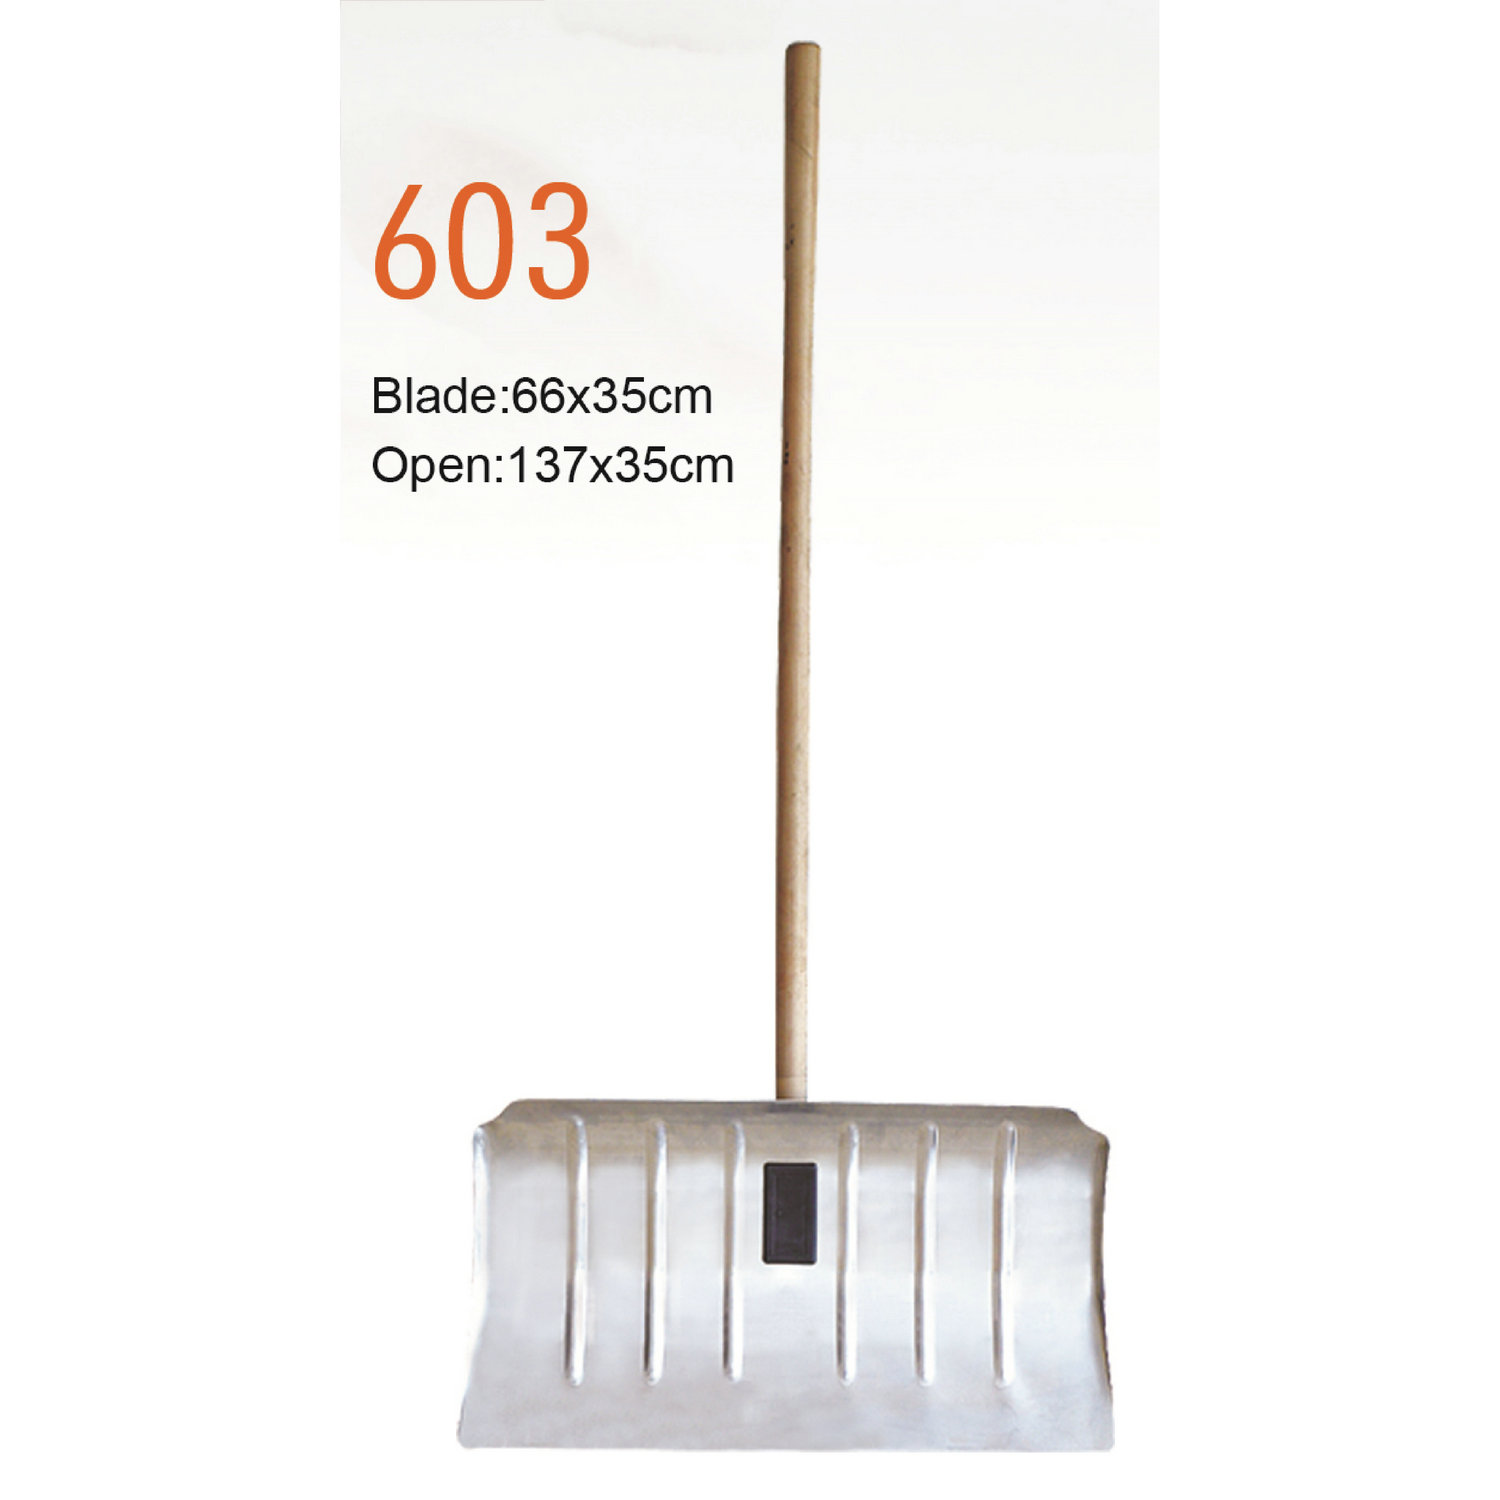 Snow shovel 603